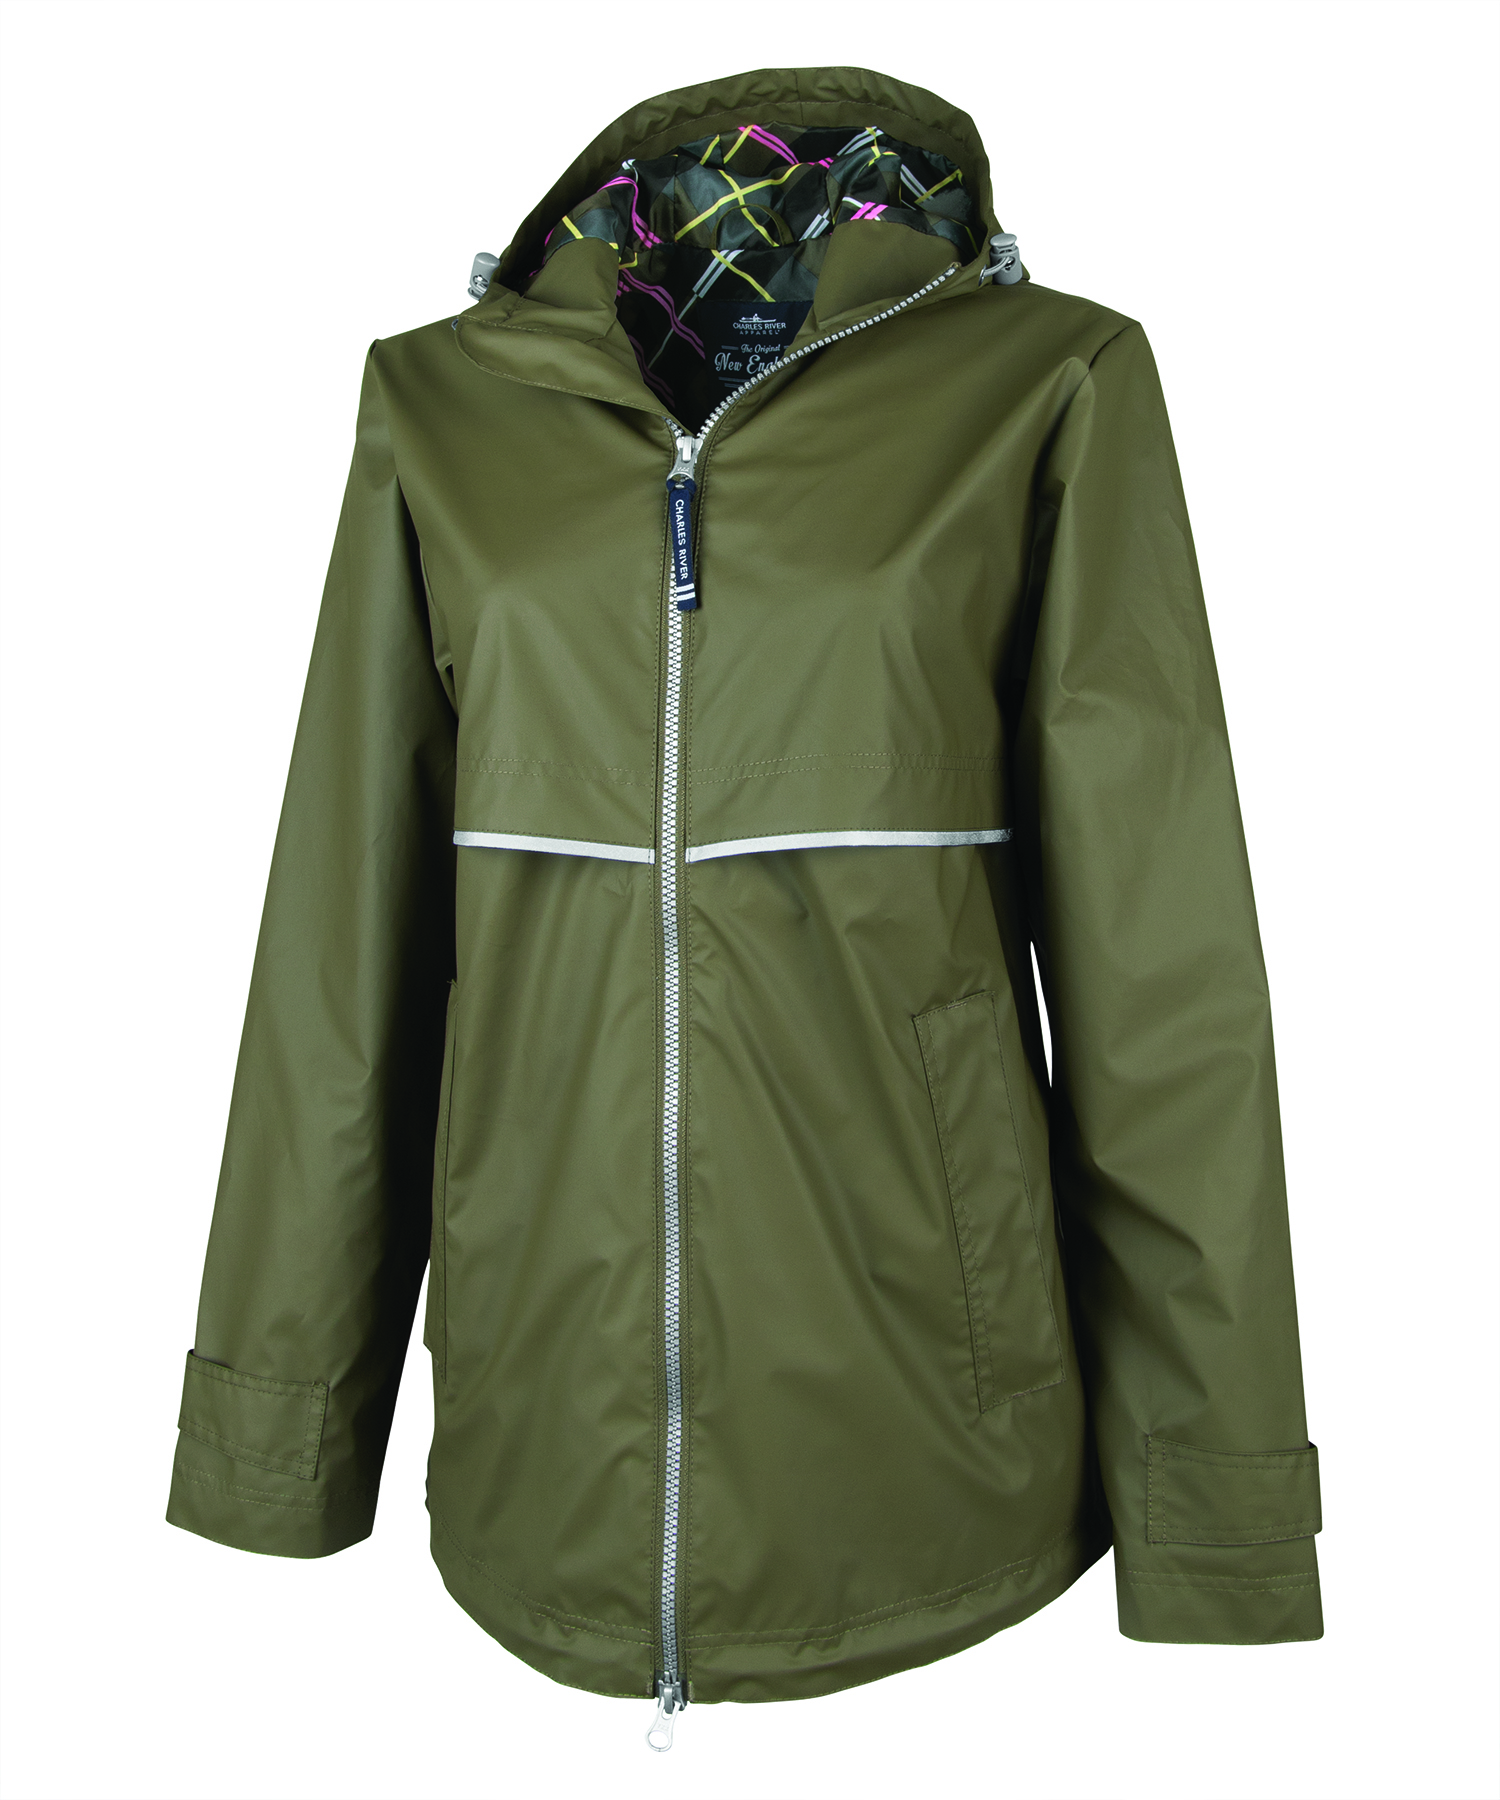 Monogrammed Rain Jacket with Print Lining, Olive